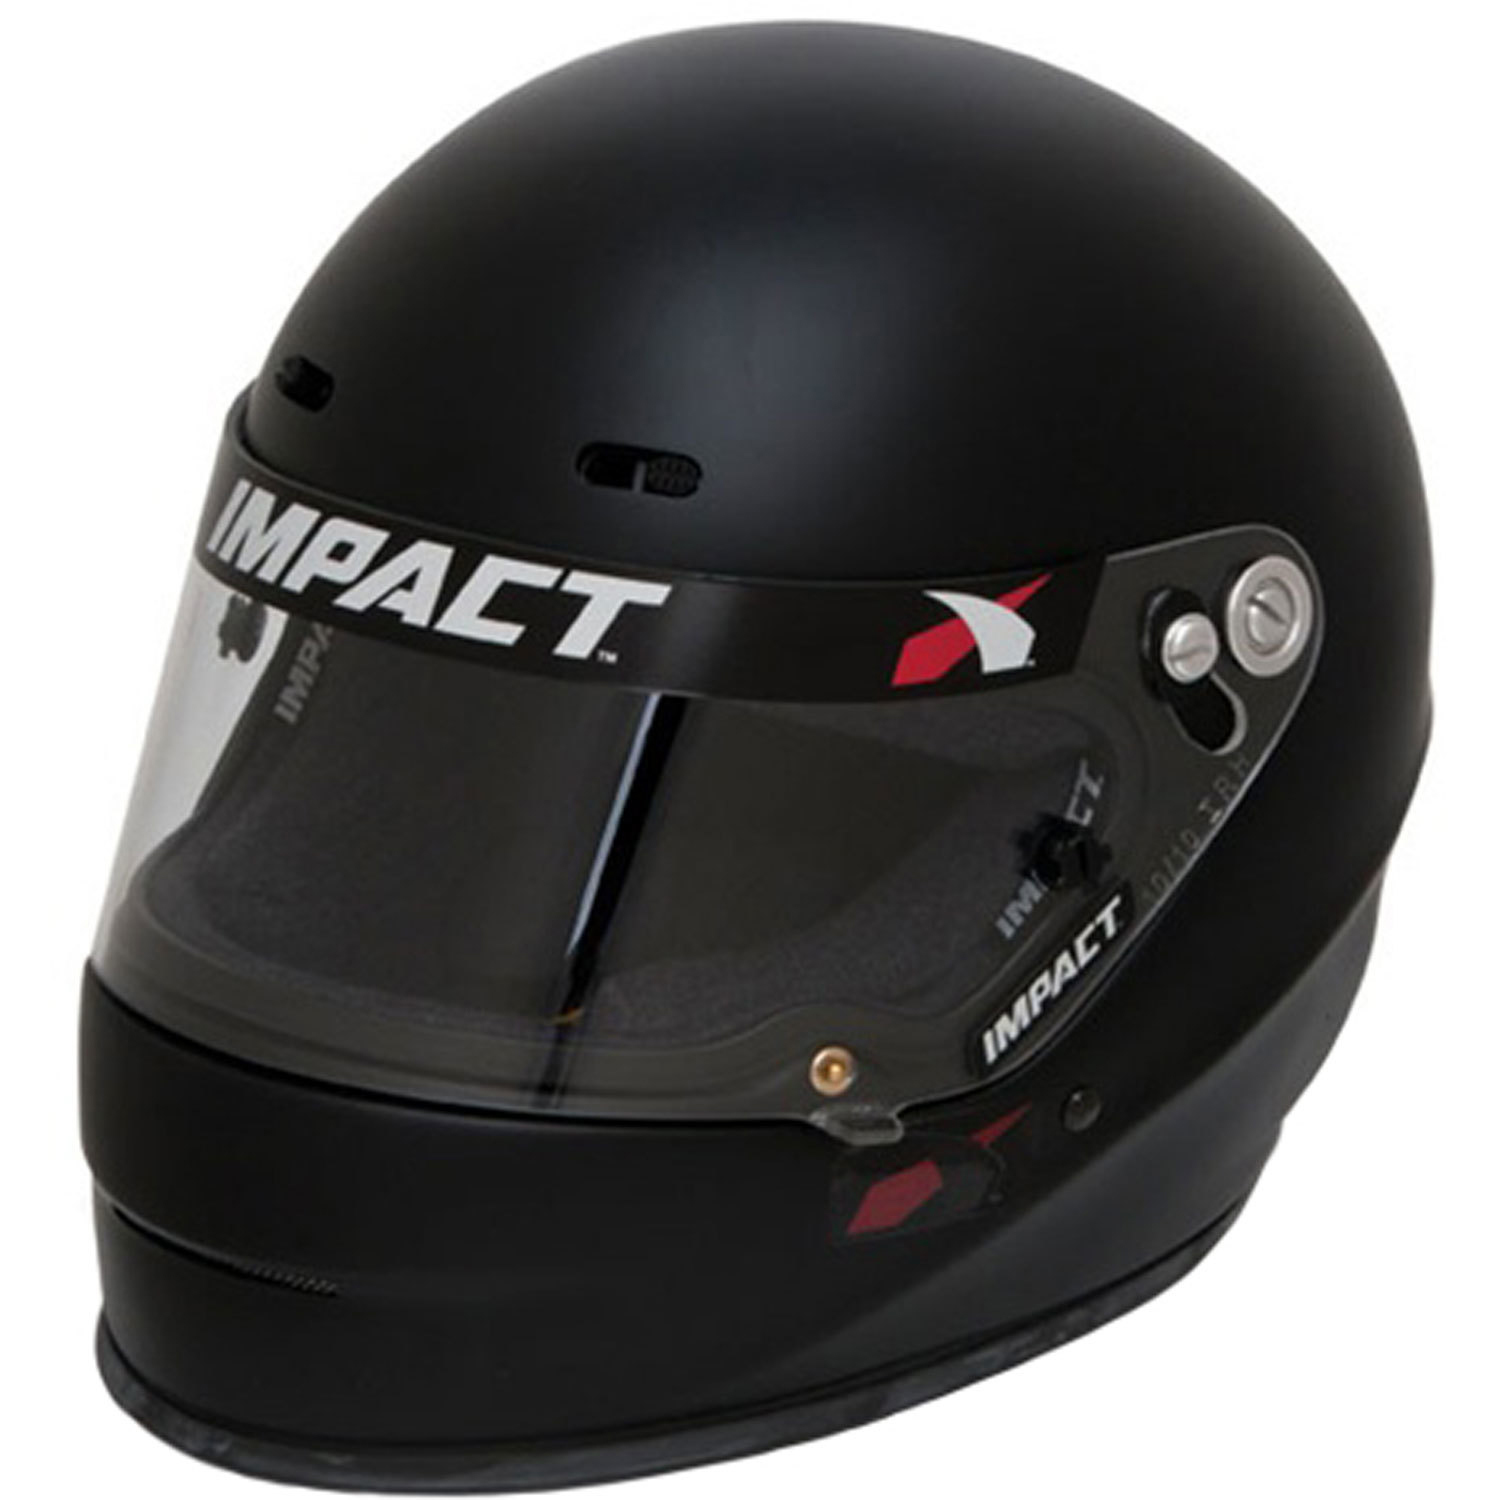 Impact Racing 14520312 Helmet, 1320, Full Face, Snell SA2020, Head and Neck Support Ready, Flat Black, Small, Each